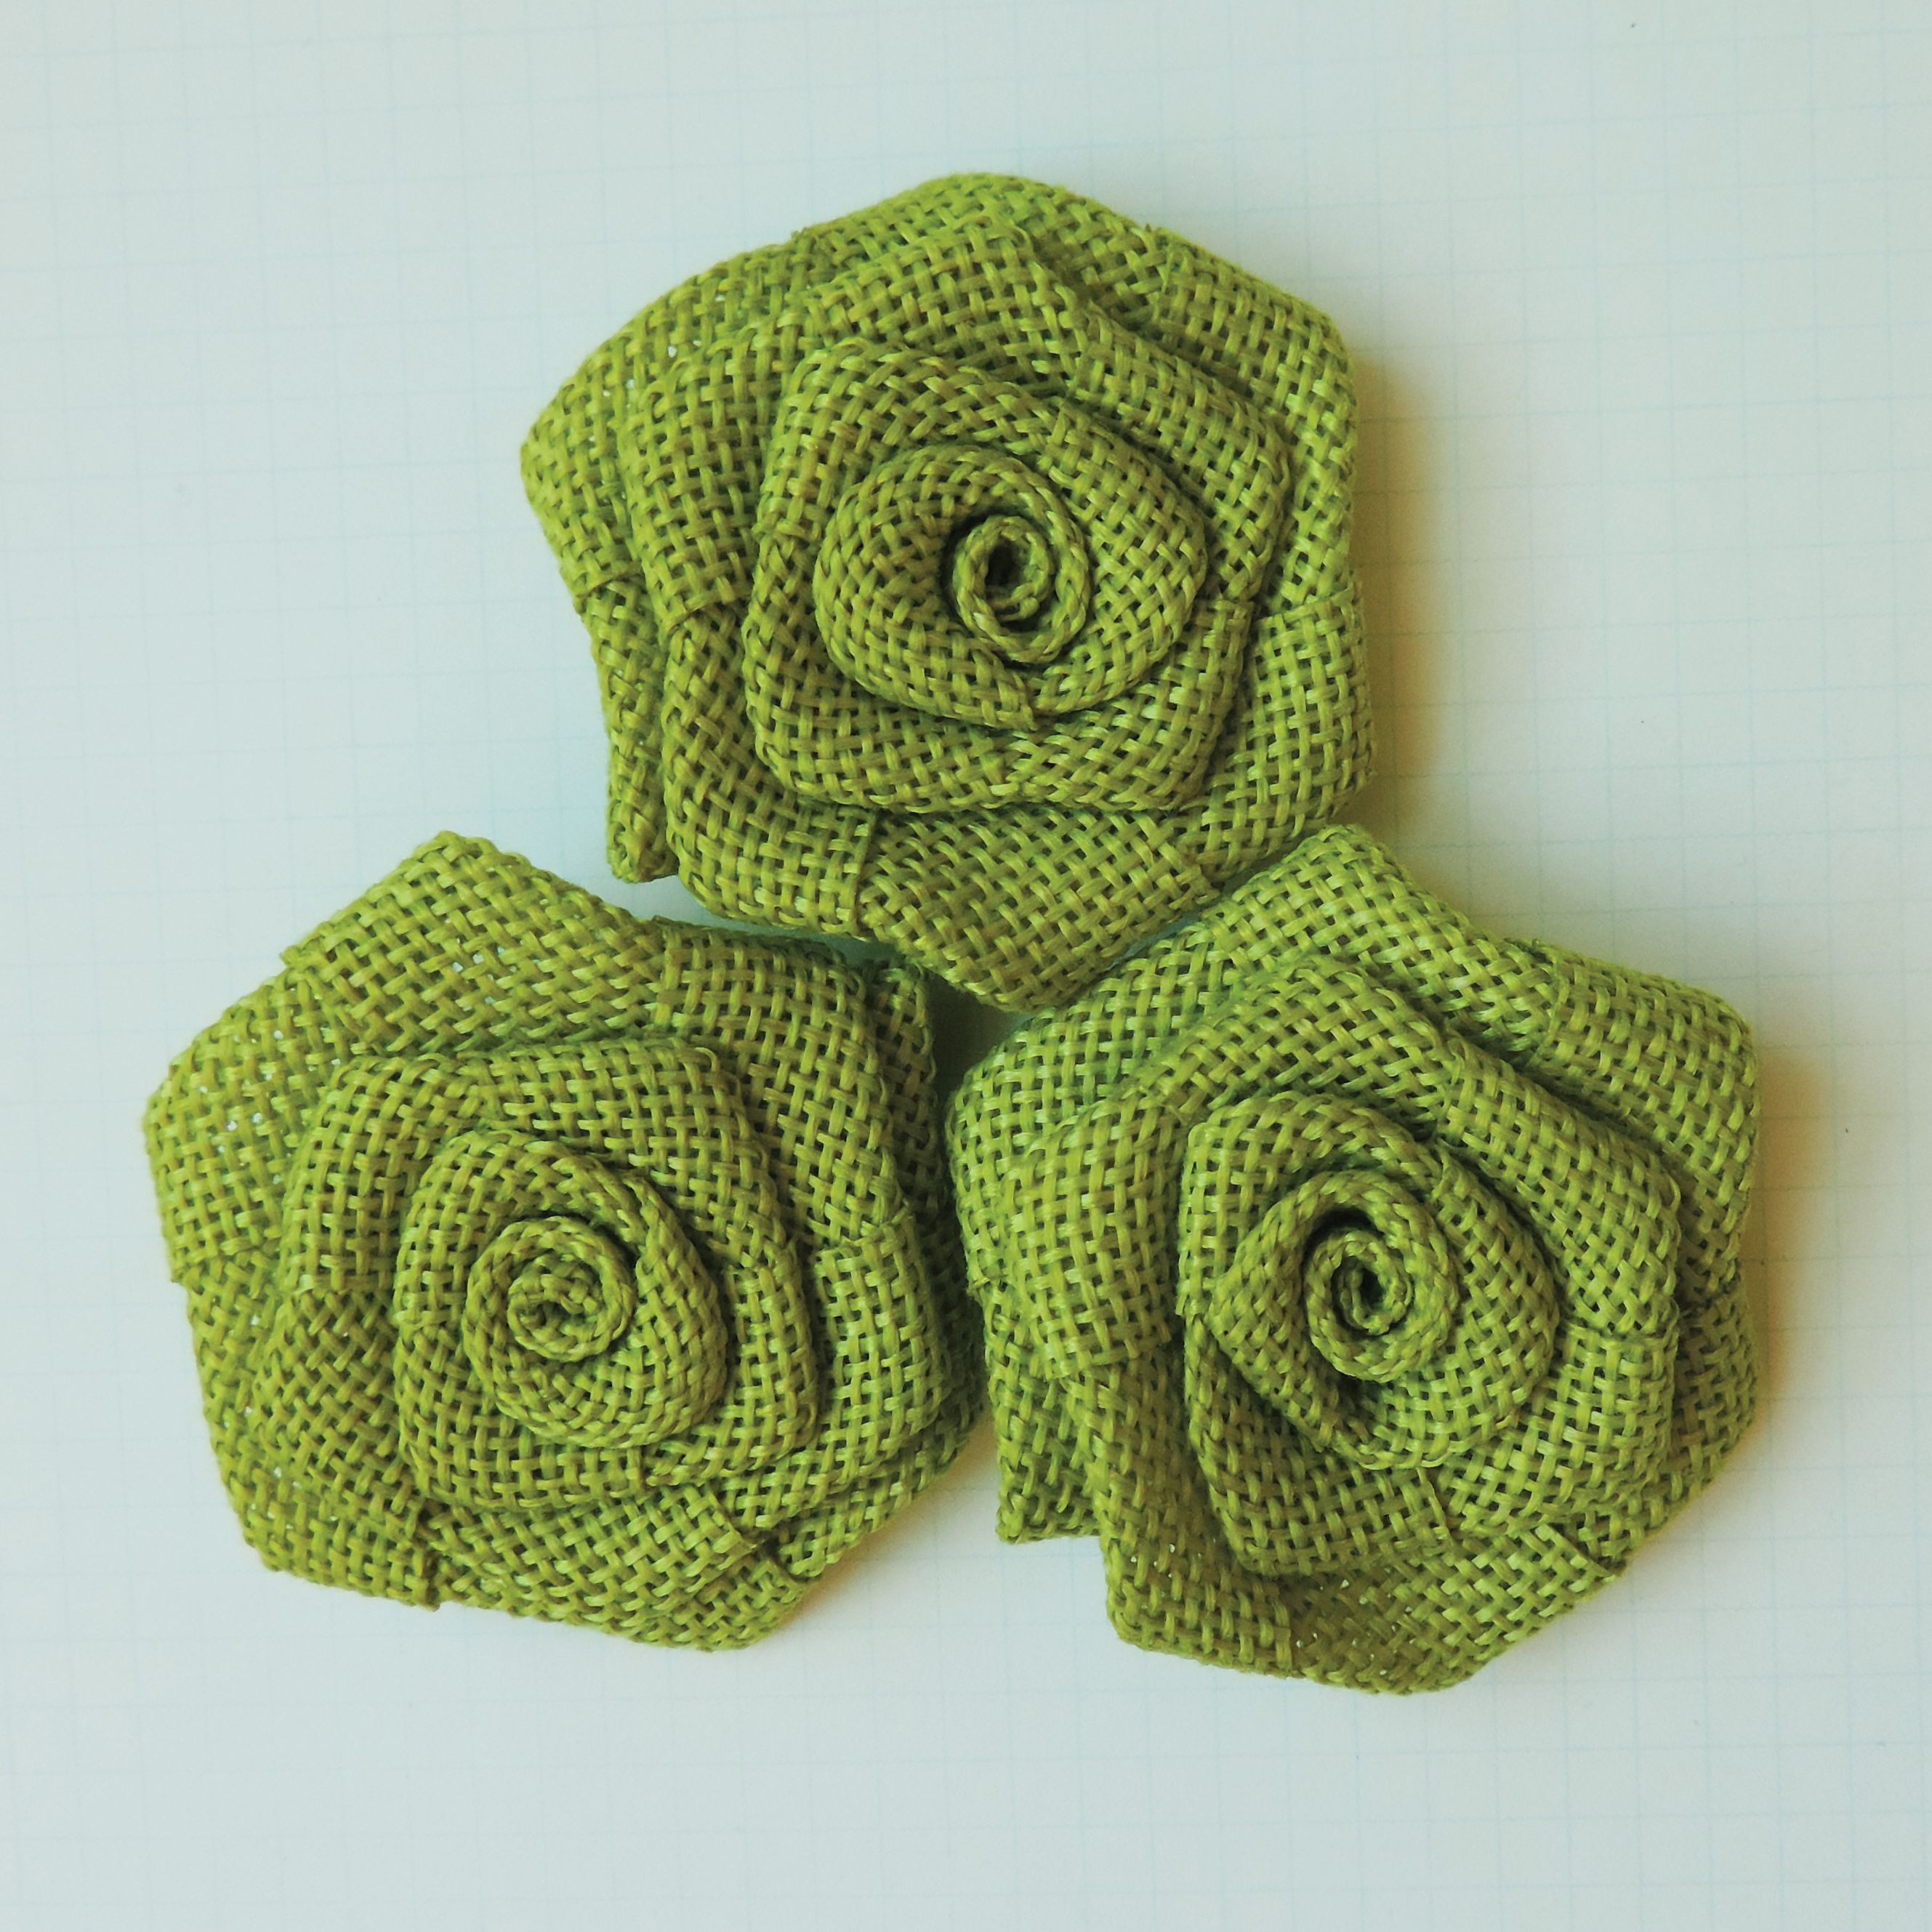 Maya Road Vintage Linen Burlap Roses, 2-Inch, Lime, 3-Pack Multi-Colored